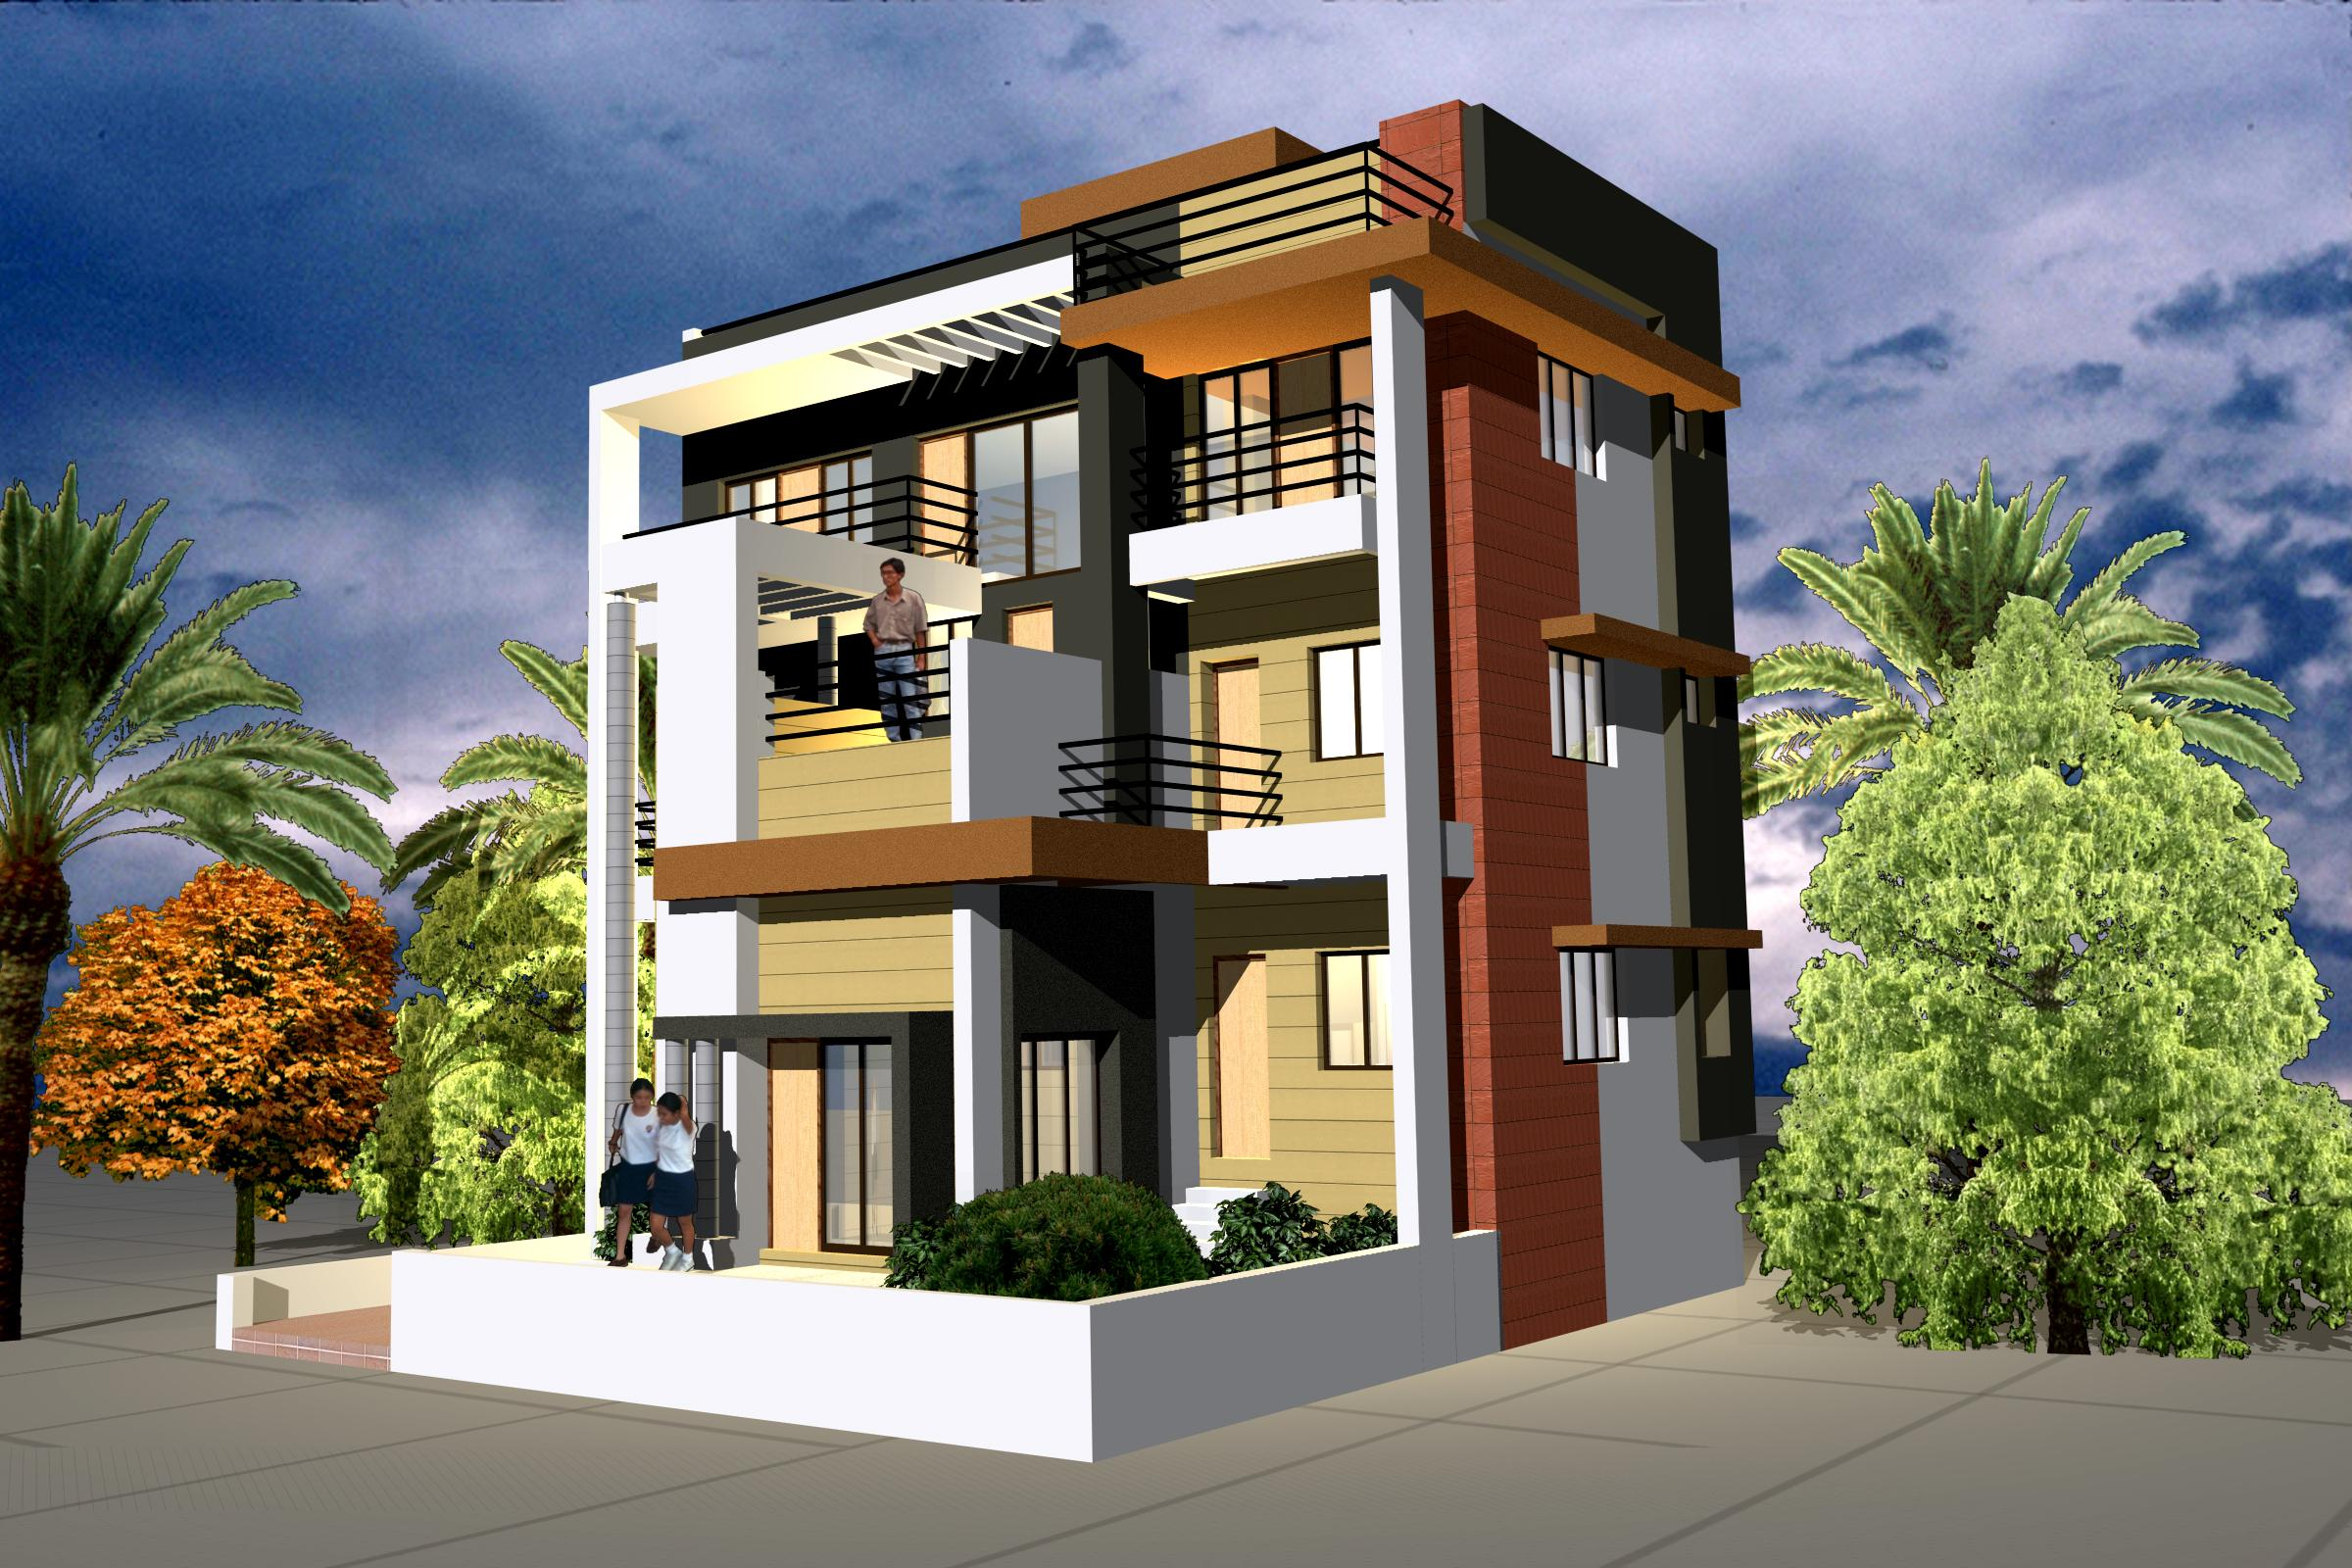 Front Elevation Designs Latest : Exterior elevation design gharexpert